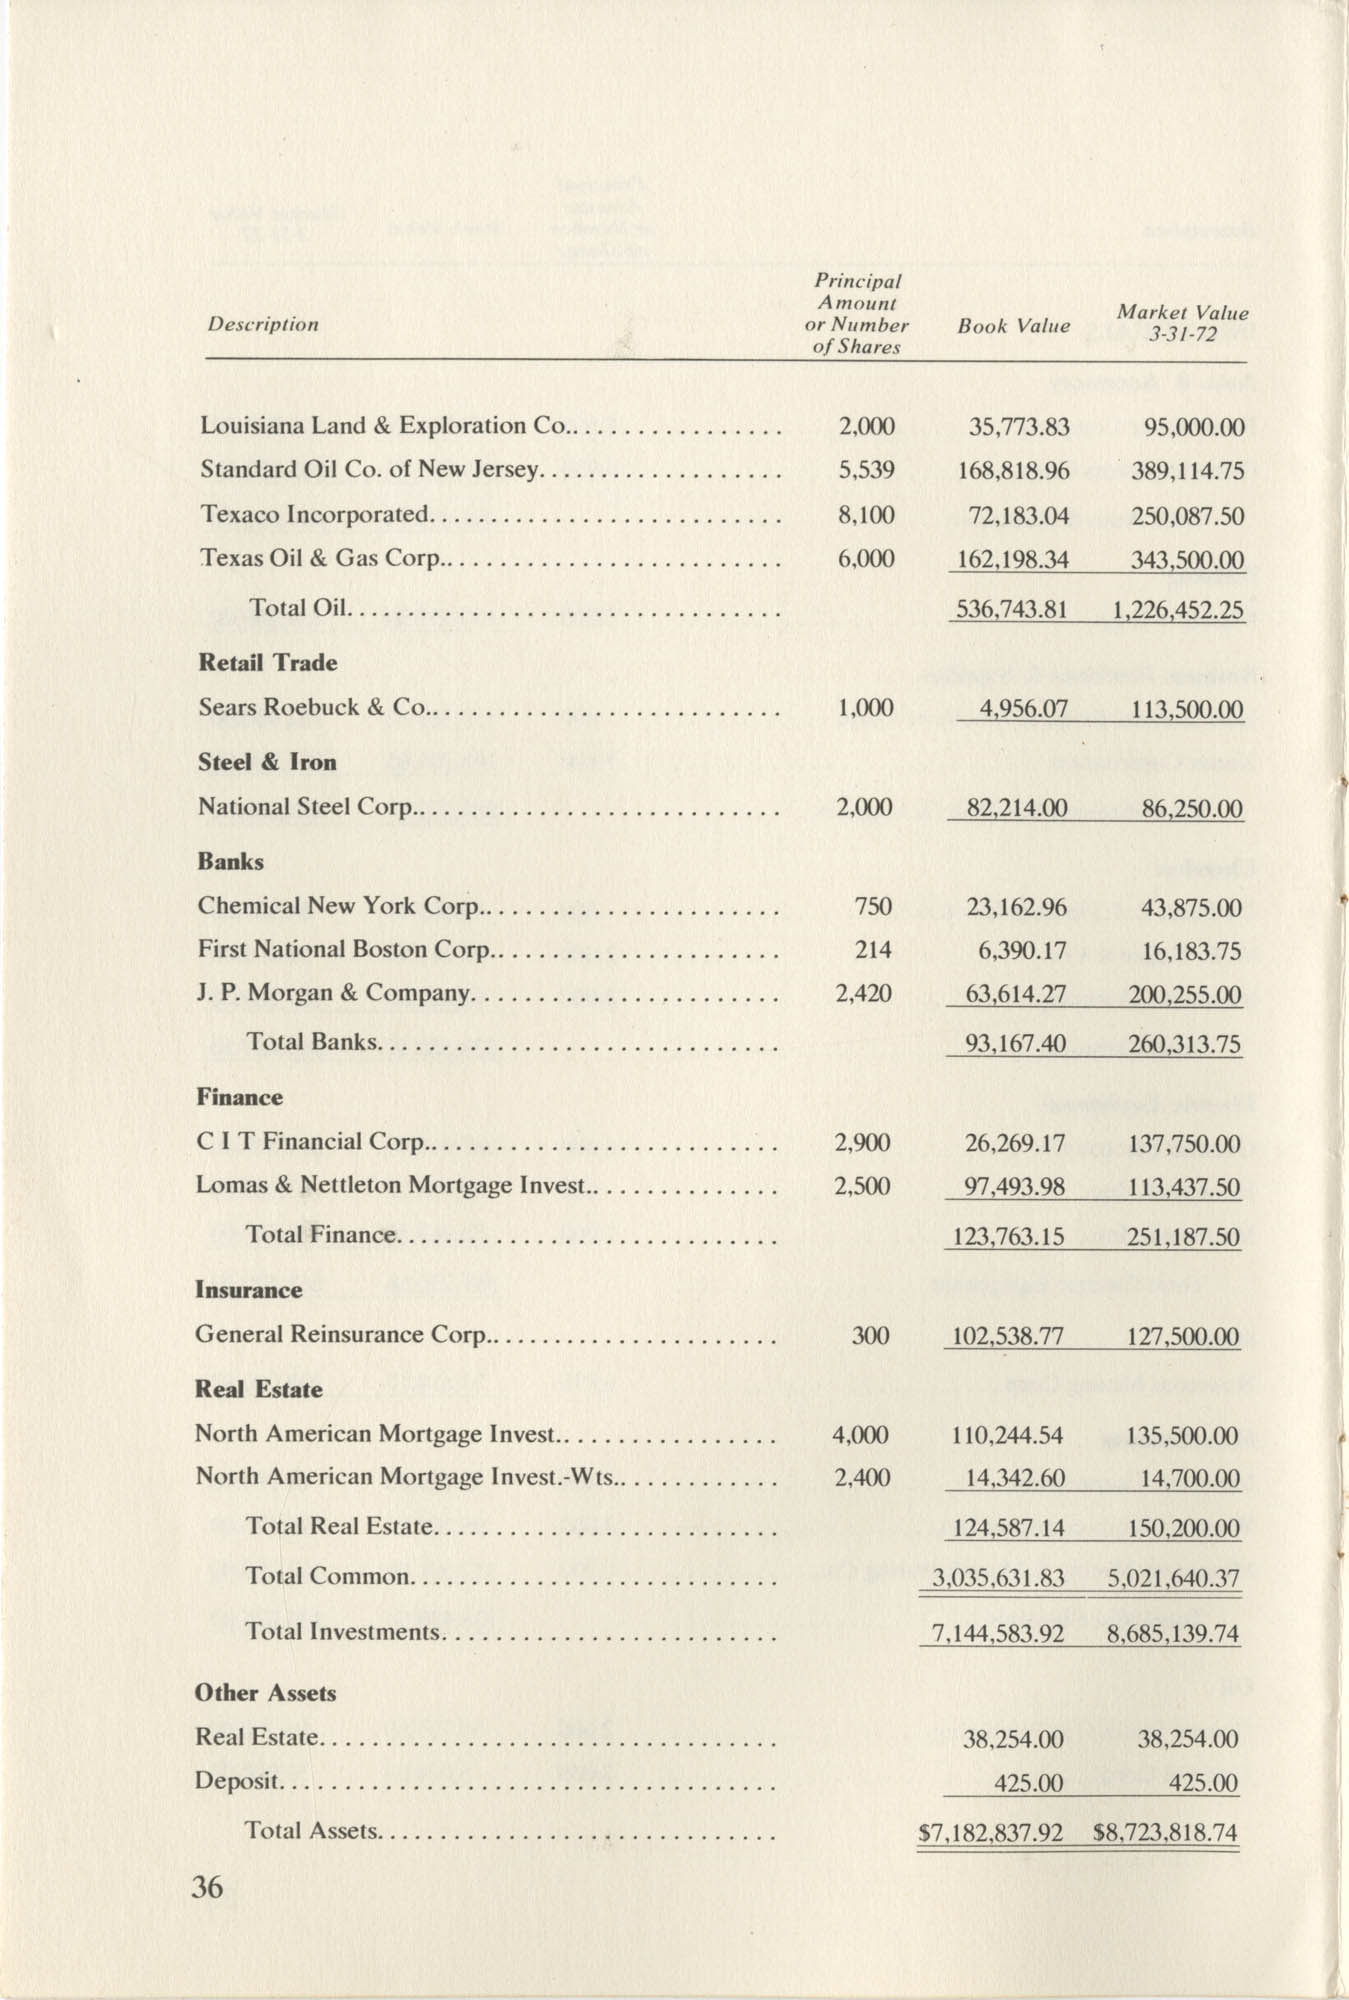 Southern Education Foundation, Annual Report 1971-1972, Page 36